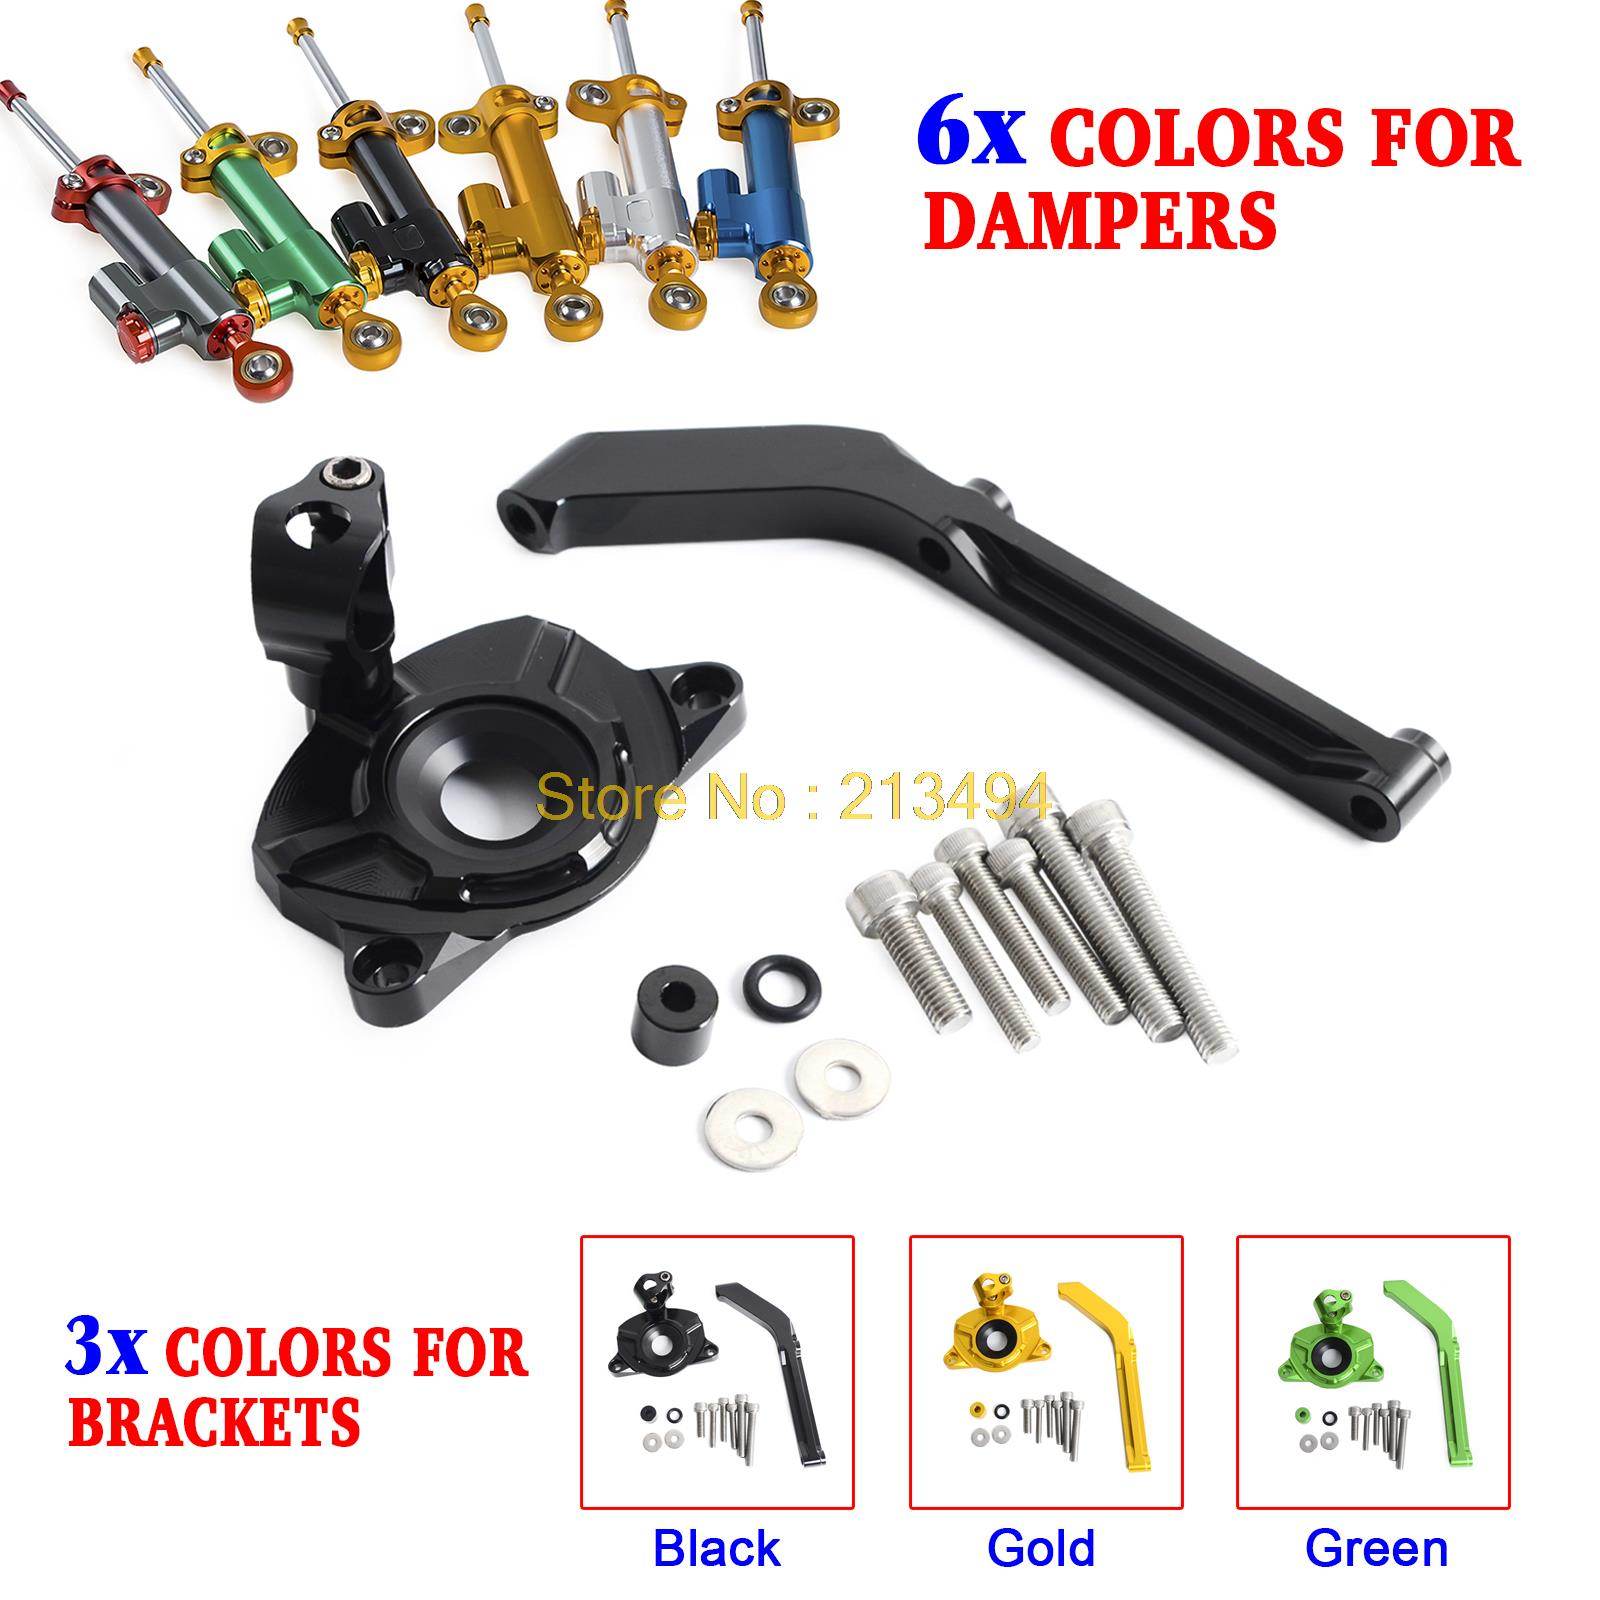 Motorcycle CNC Steering Damper Stabilizer & Bracket fr Kawasaki Z1000/ABS 2014-2017 Not Fit Z1000SXMotorcycle CNC Steering Damper Stabilizer & Bracket fr Kawasaki Z1000/ABS 2014-2017 Not Fit Z1000SX